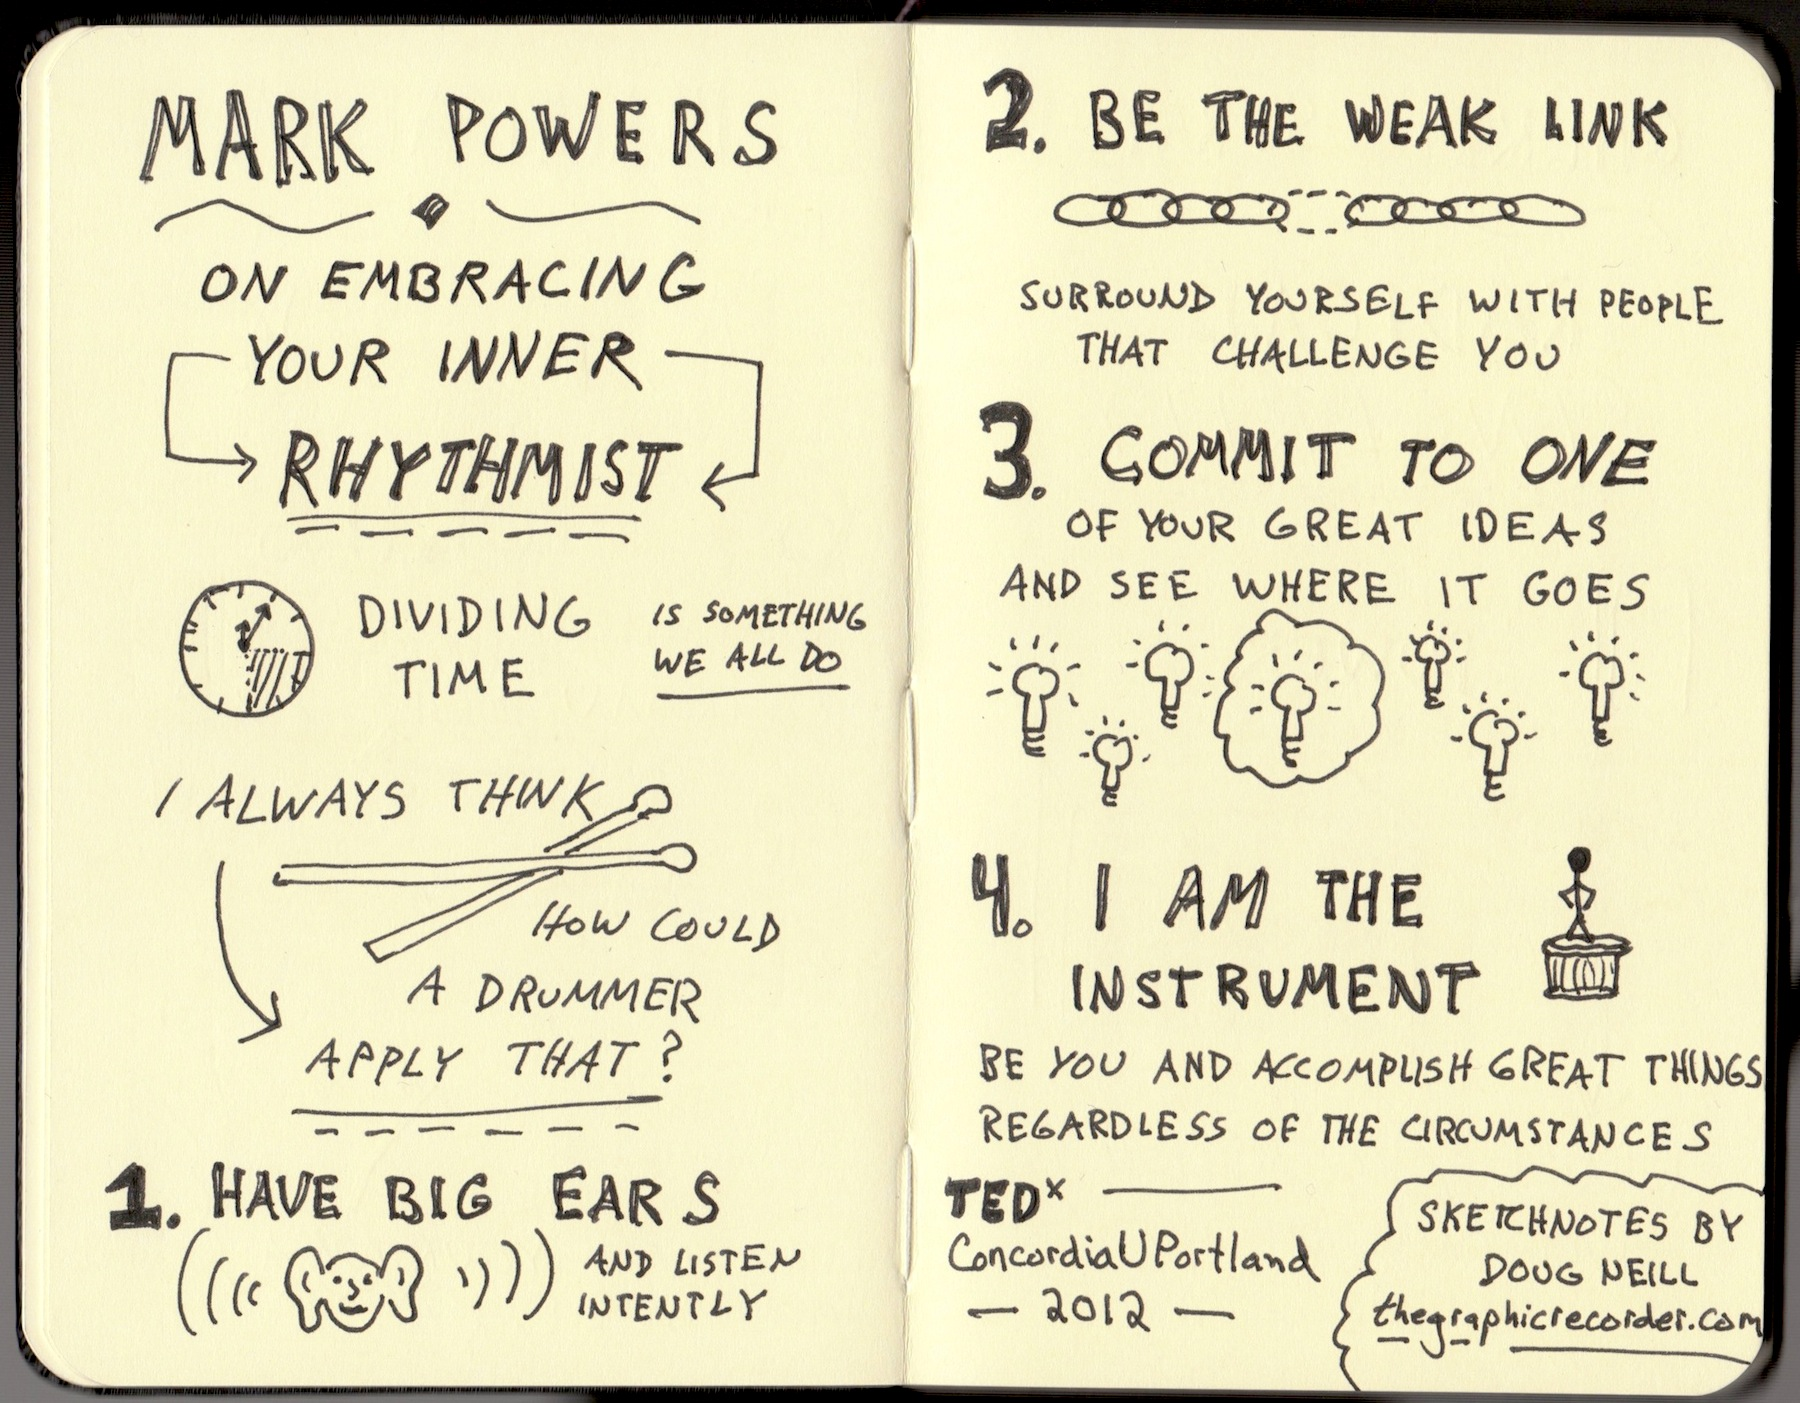 Sketchnotes of Mark Powers 2012 TEDxConcordiaUPortland Talk - I Am The Instrument - Doug Neill - have big ears, commit to one idea, be the weakest link